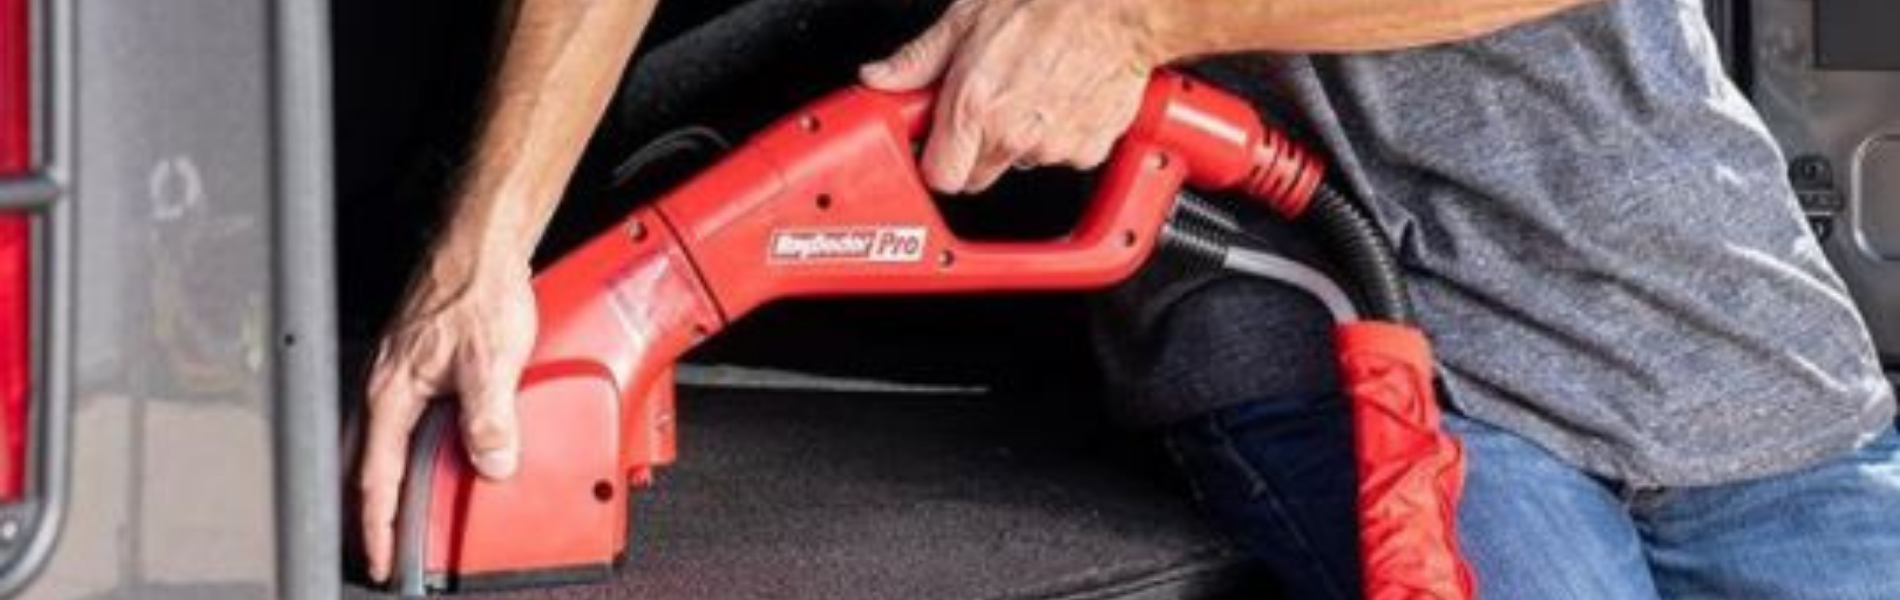 car detailing feature - How to Detail Your Vehicle with Rug Doctor